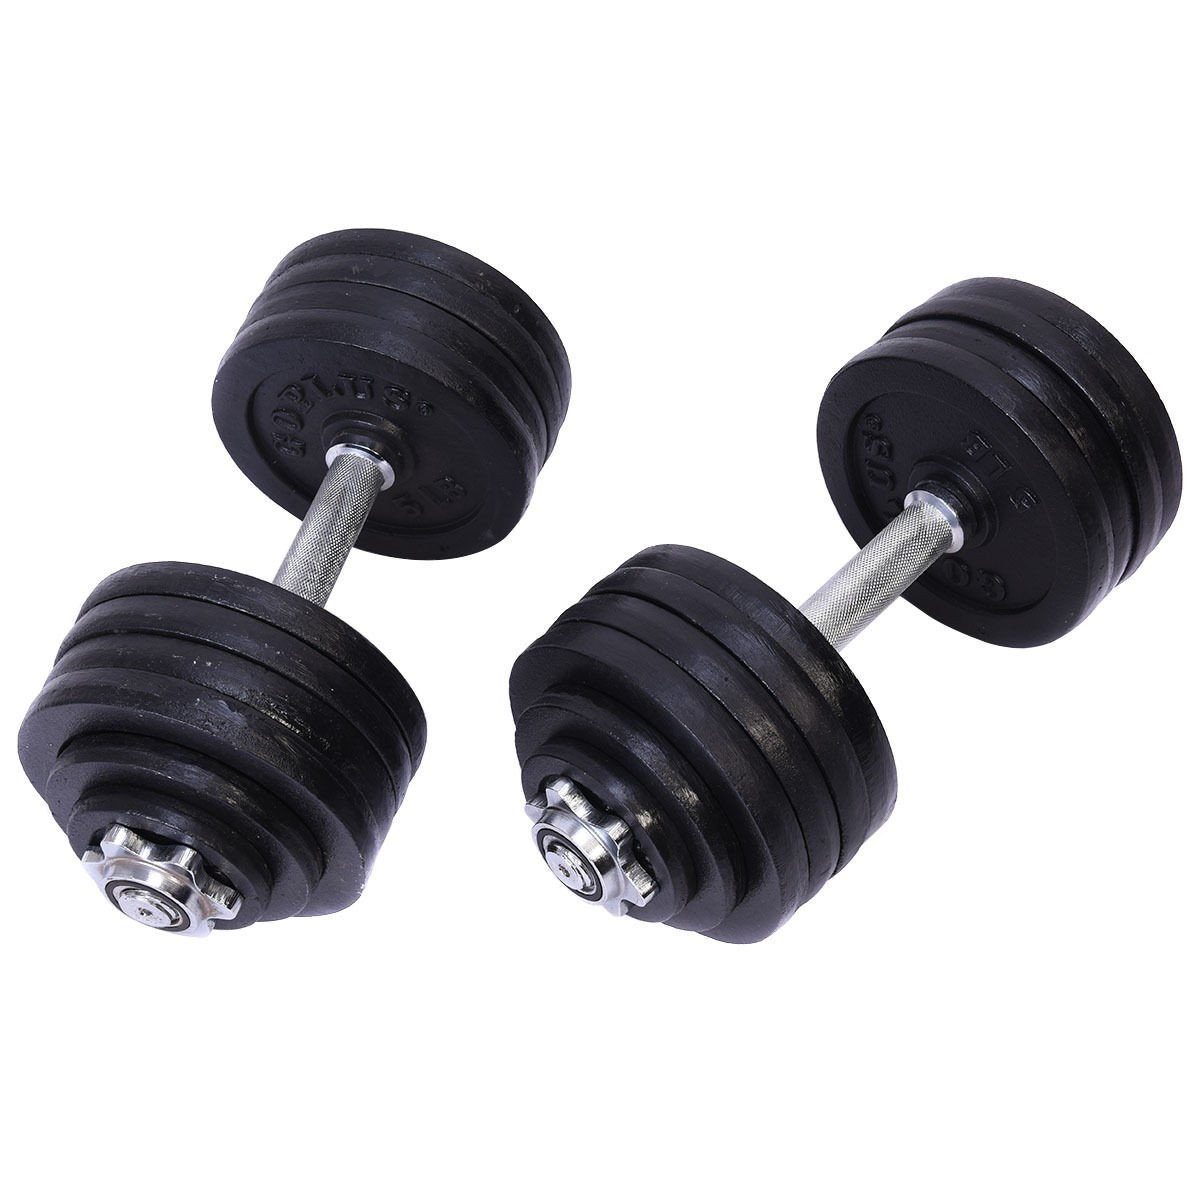 US 2x 52.5 LB Weight Dumbbell Set Adjustable Cap Gym